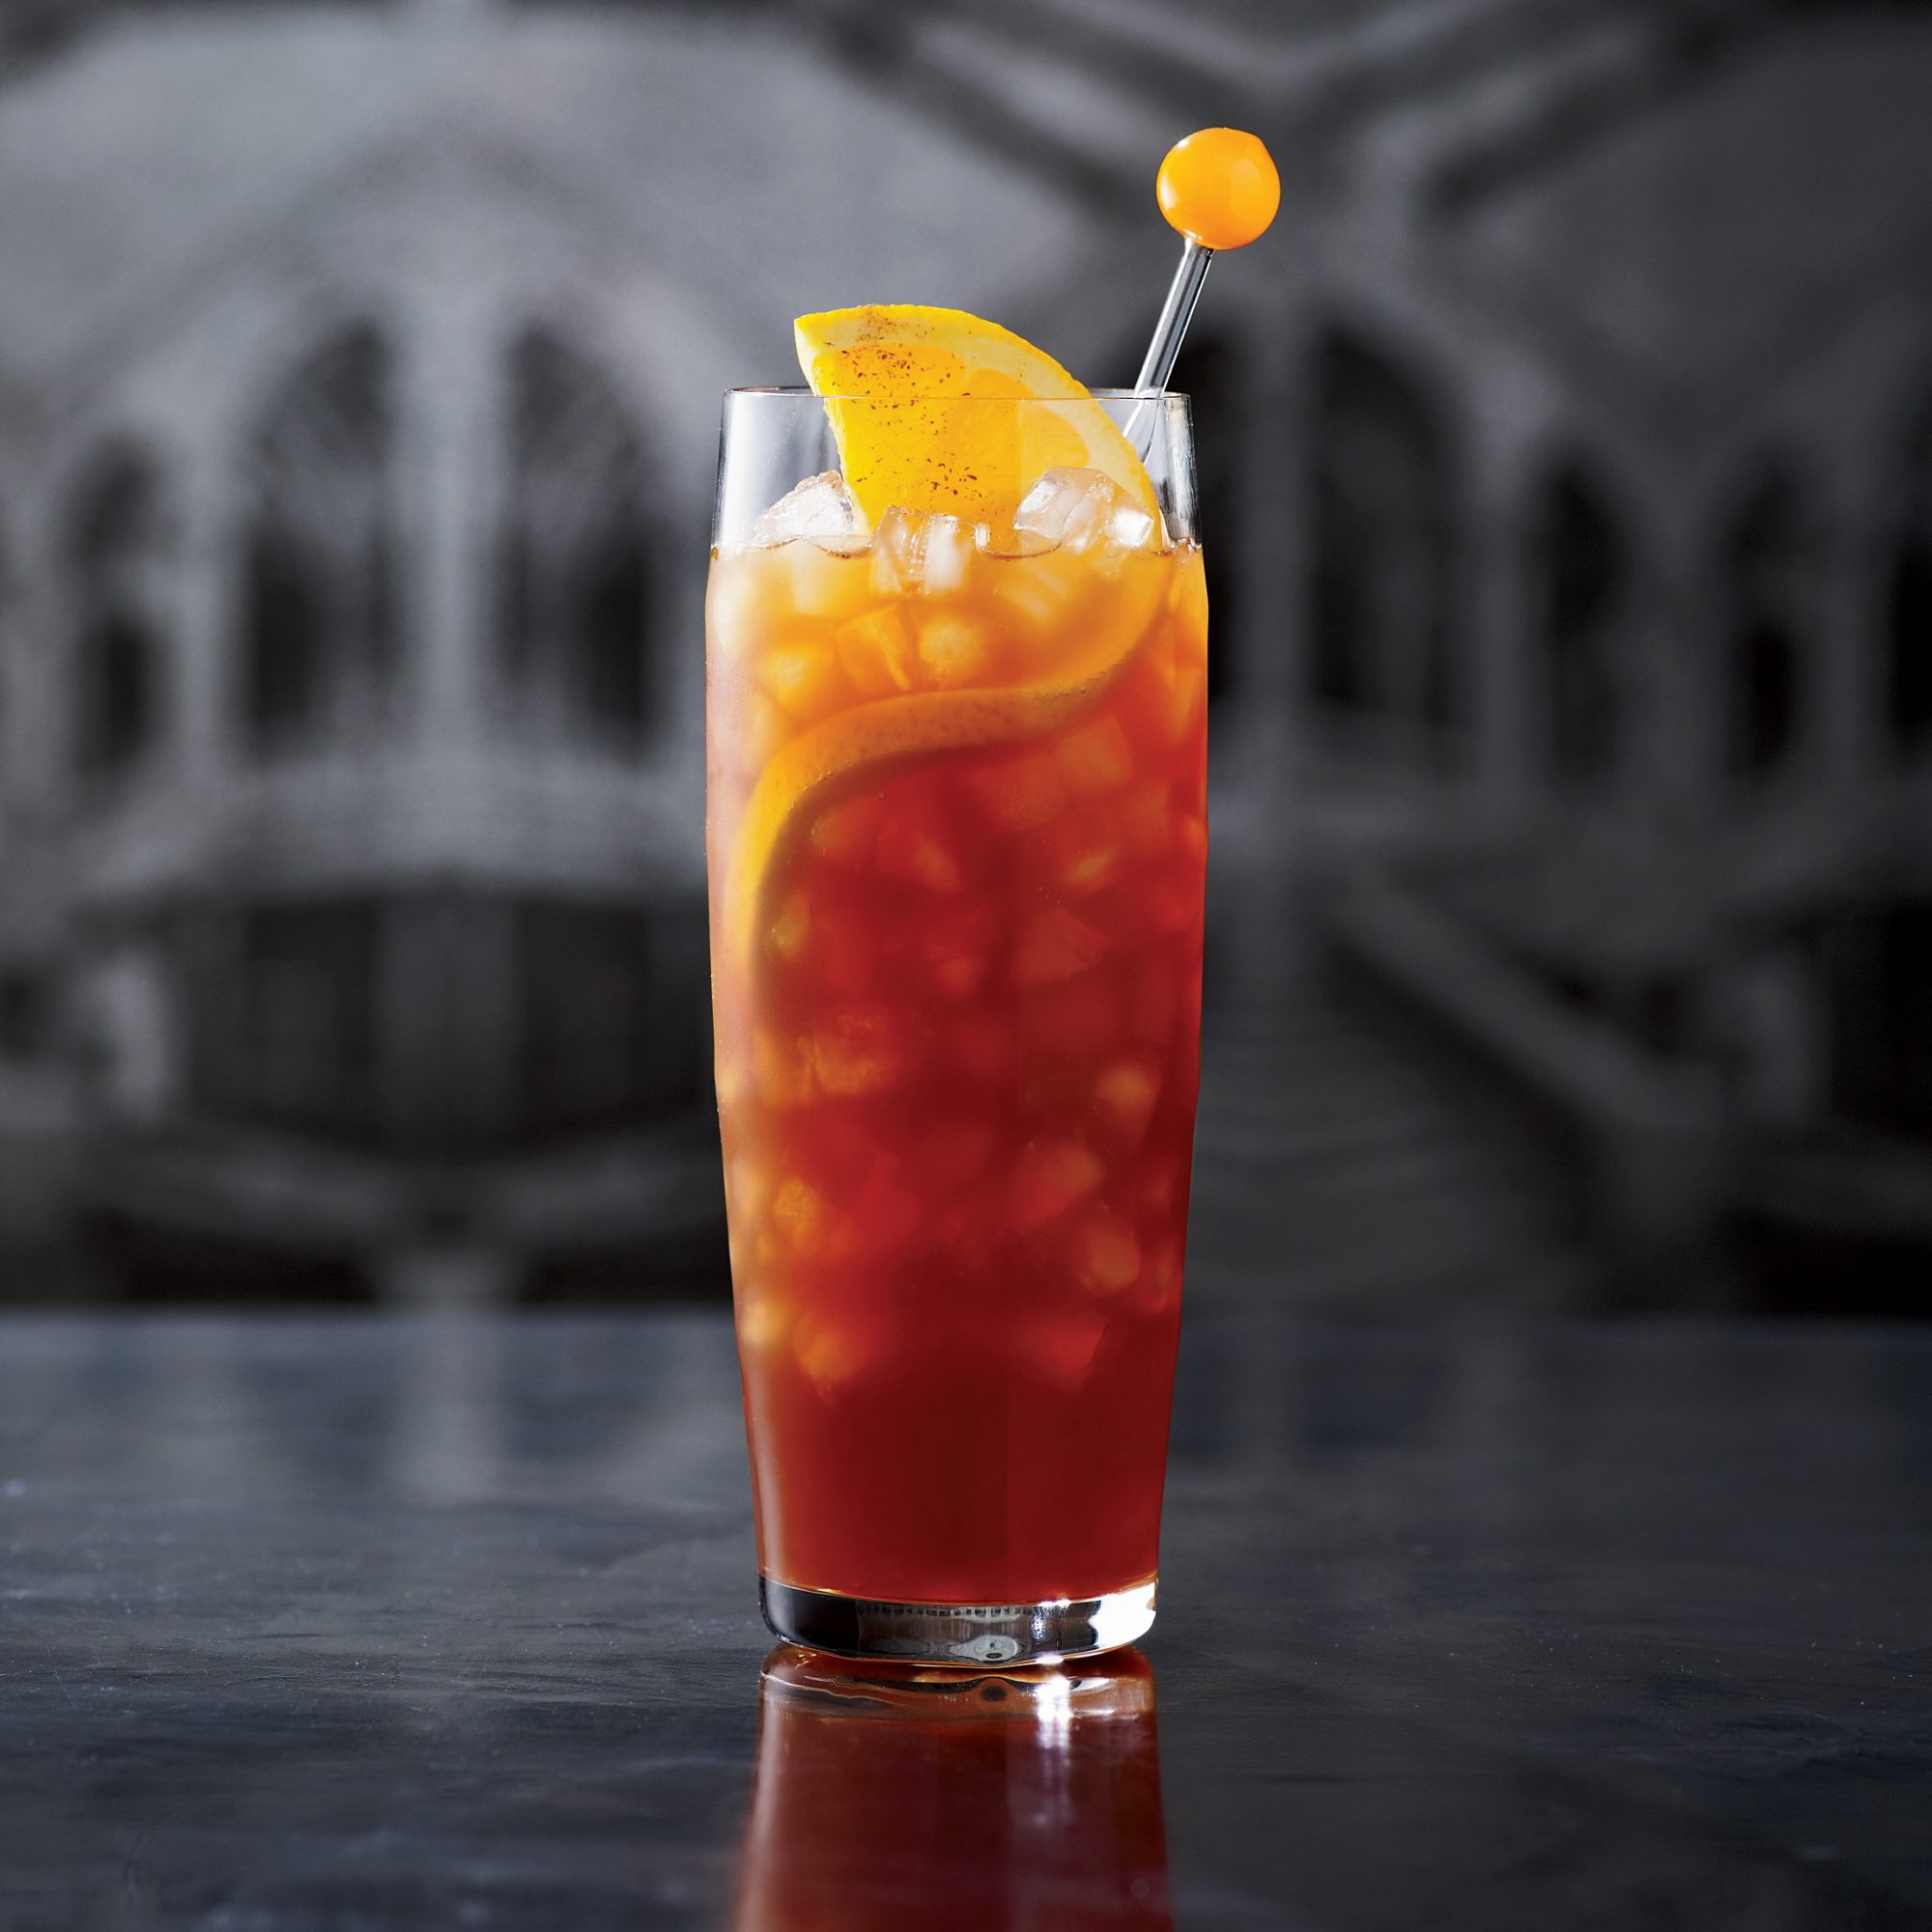 This citrusy, tiki-style punch is from mixologist Joaquín Simó. It features orange-spiced Ramazzotti Amaro (a bittersweet herbal Italian digestif) and homemade orange cordial.